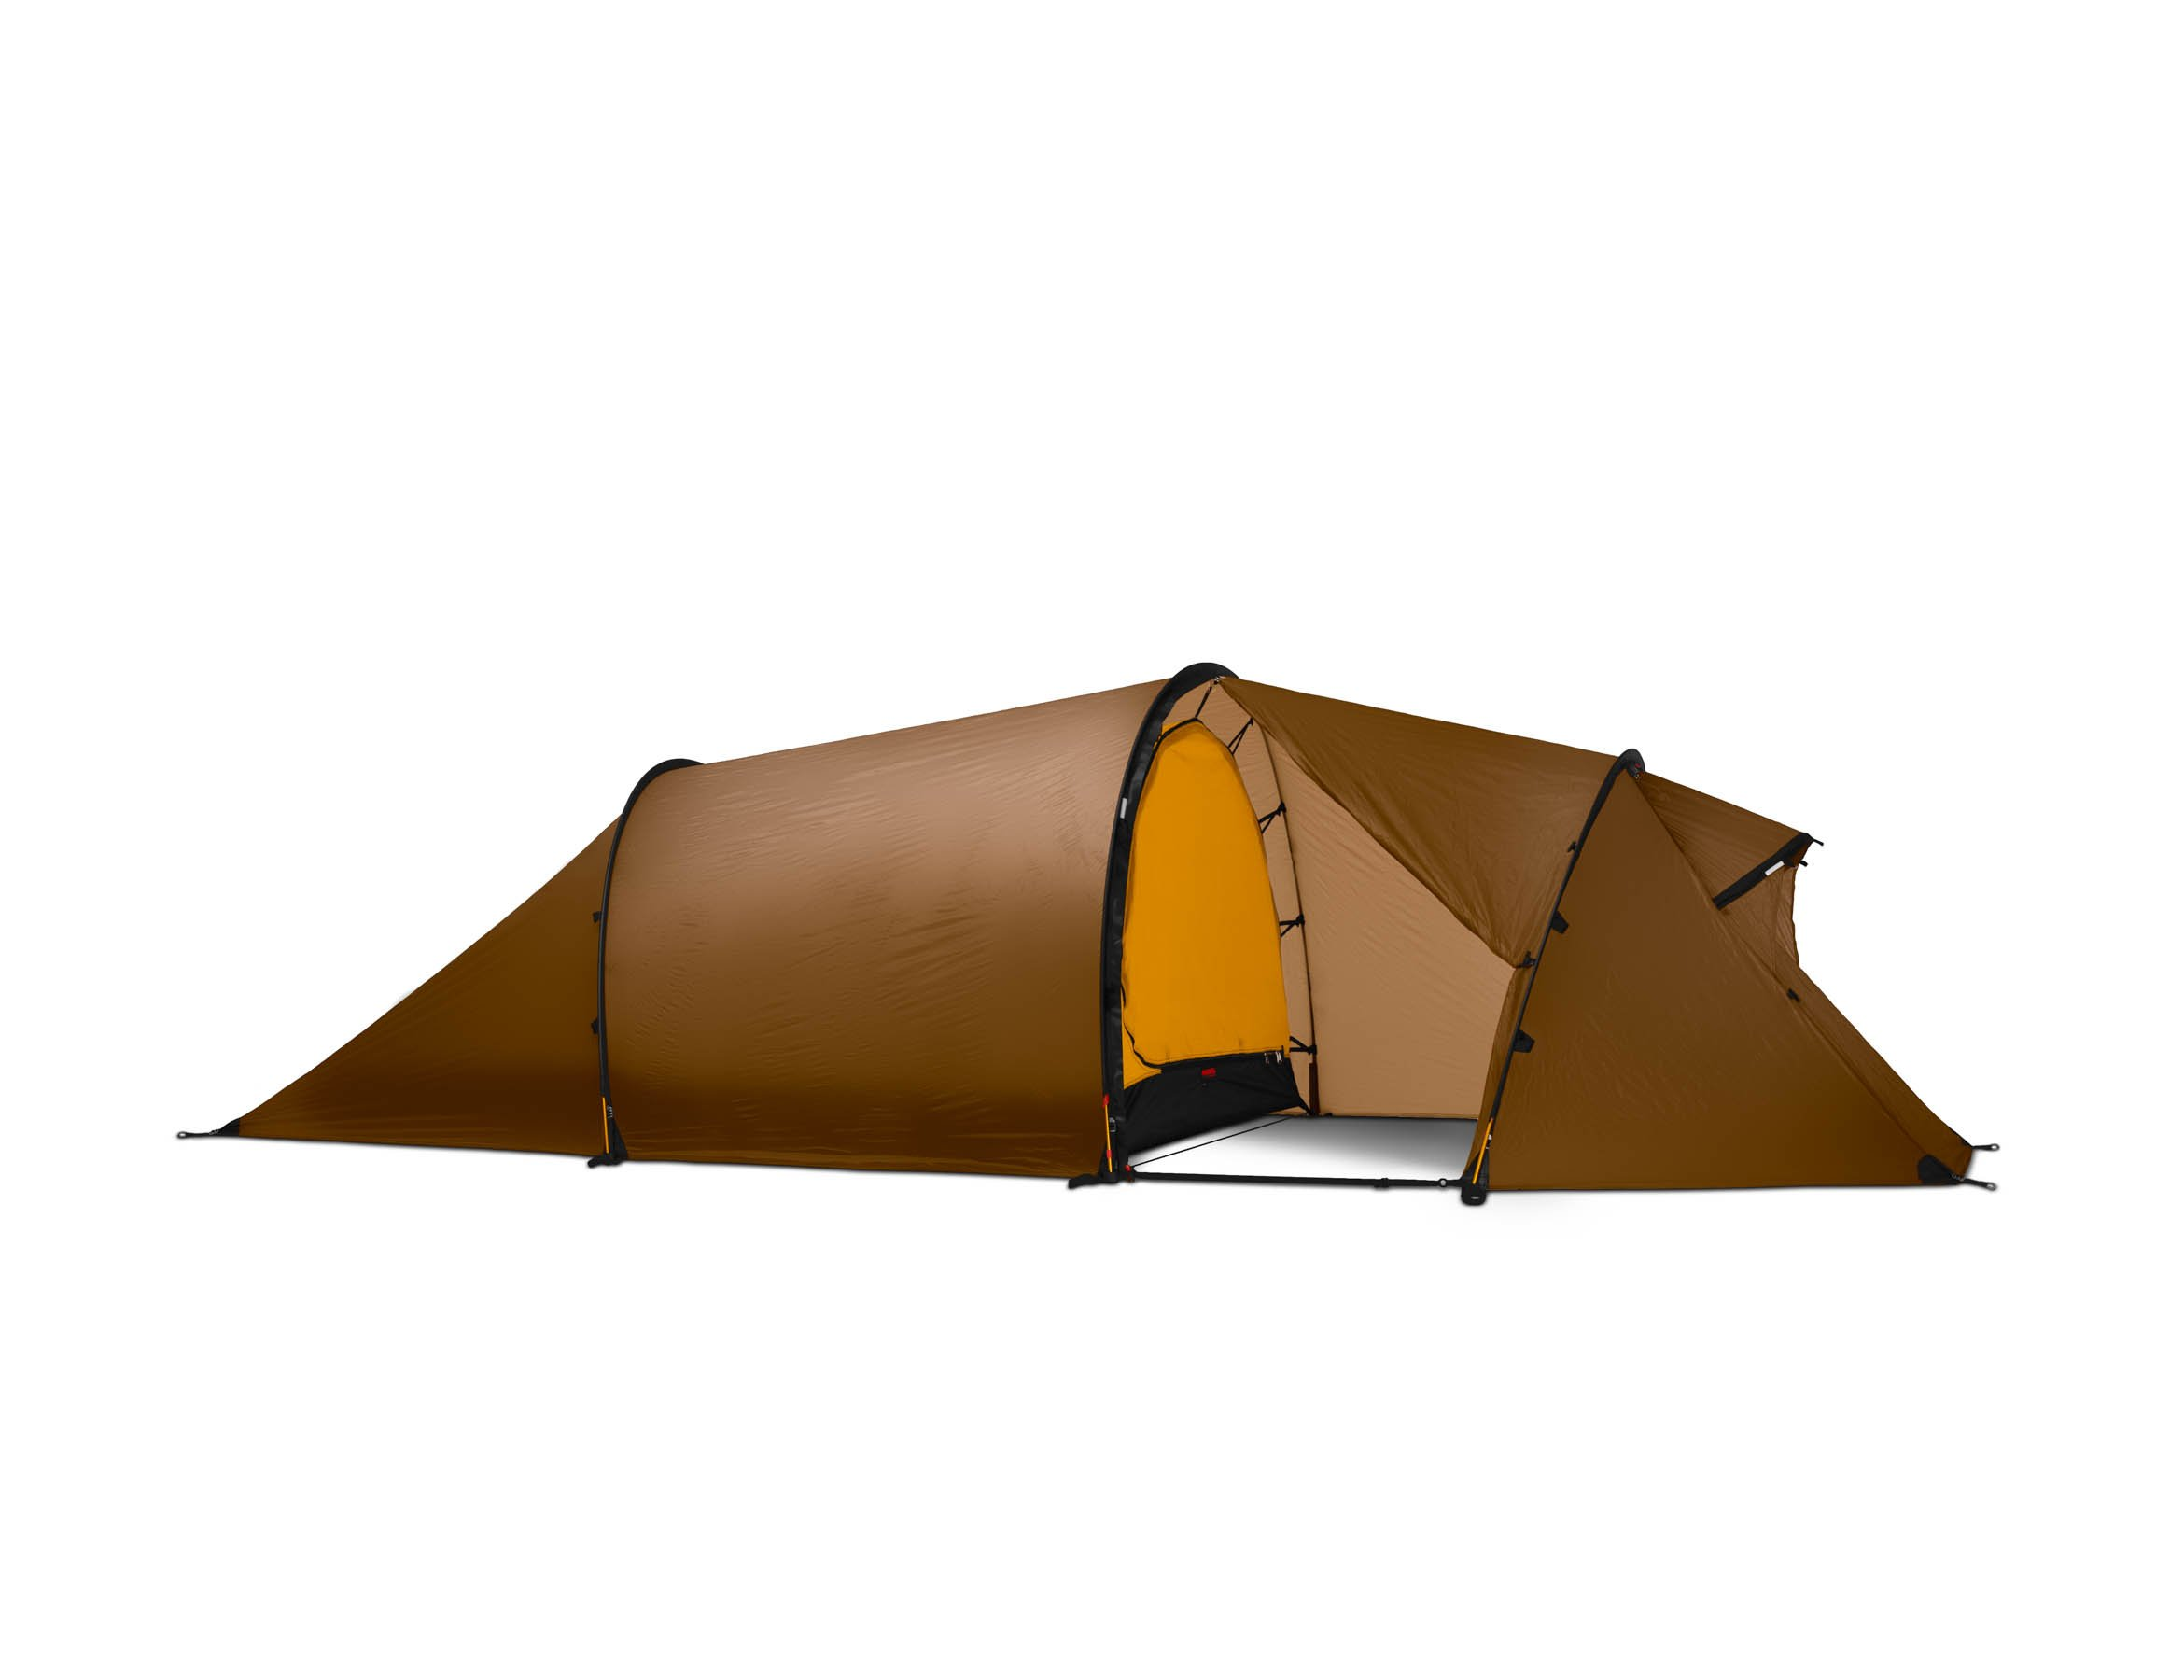 Hilleberg Nallo 3 GT Mountaineering Tent, Sand-Colored